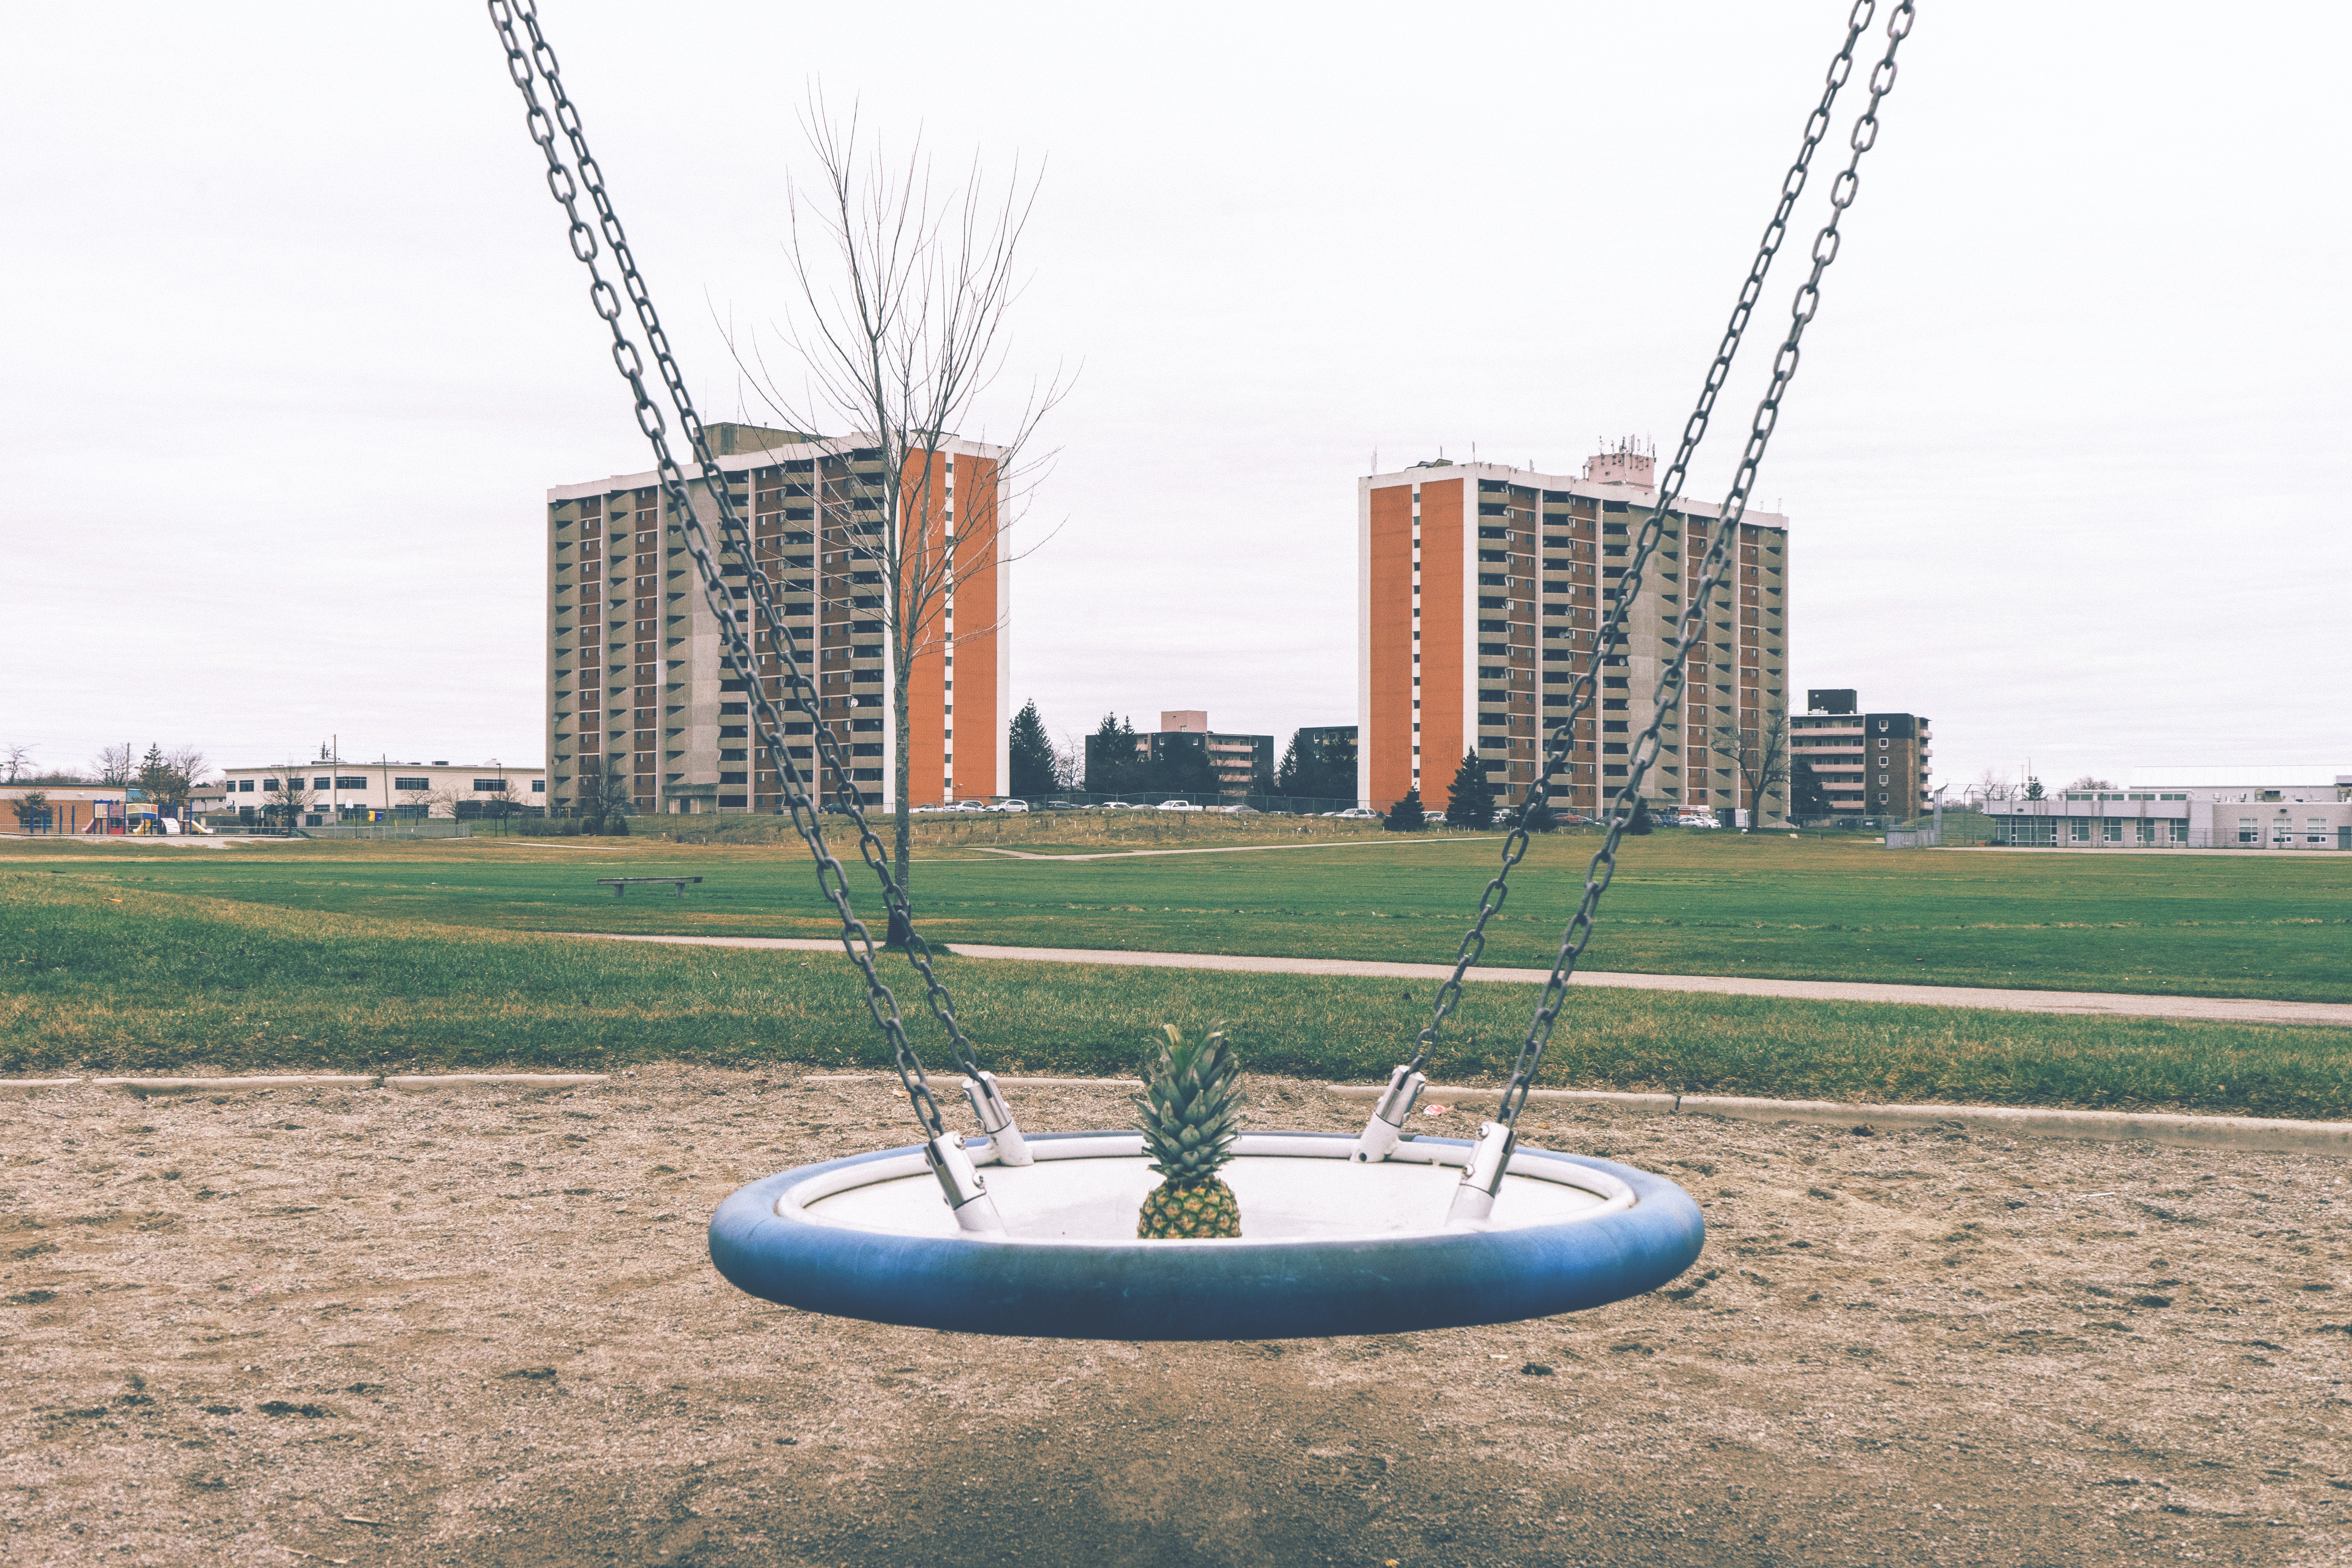 A pineapple in a swing in a playground with buildings behind it